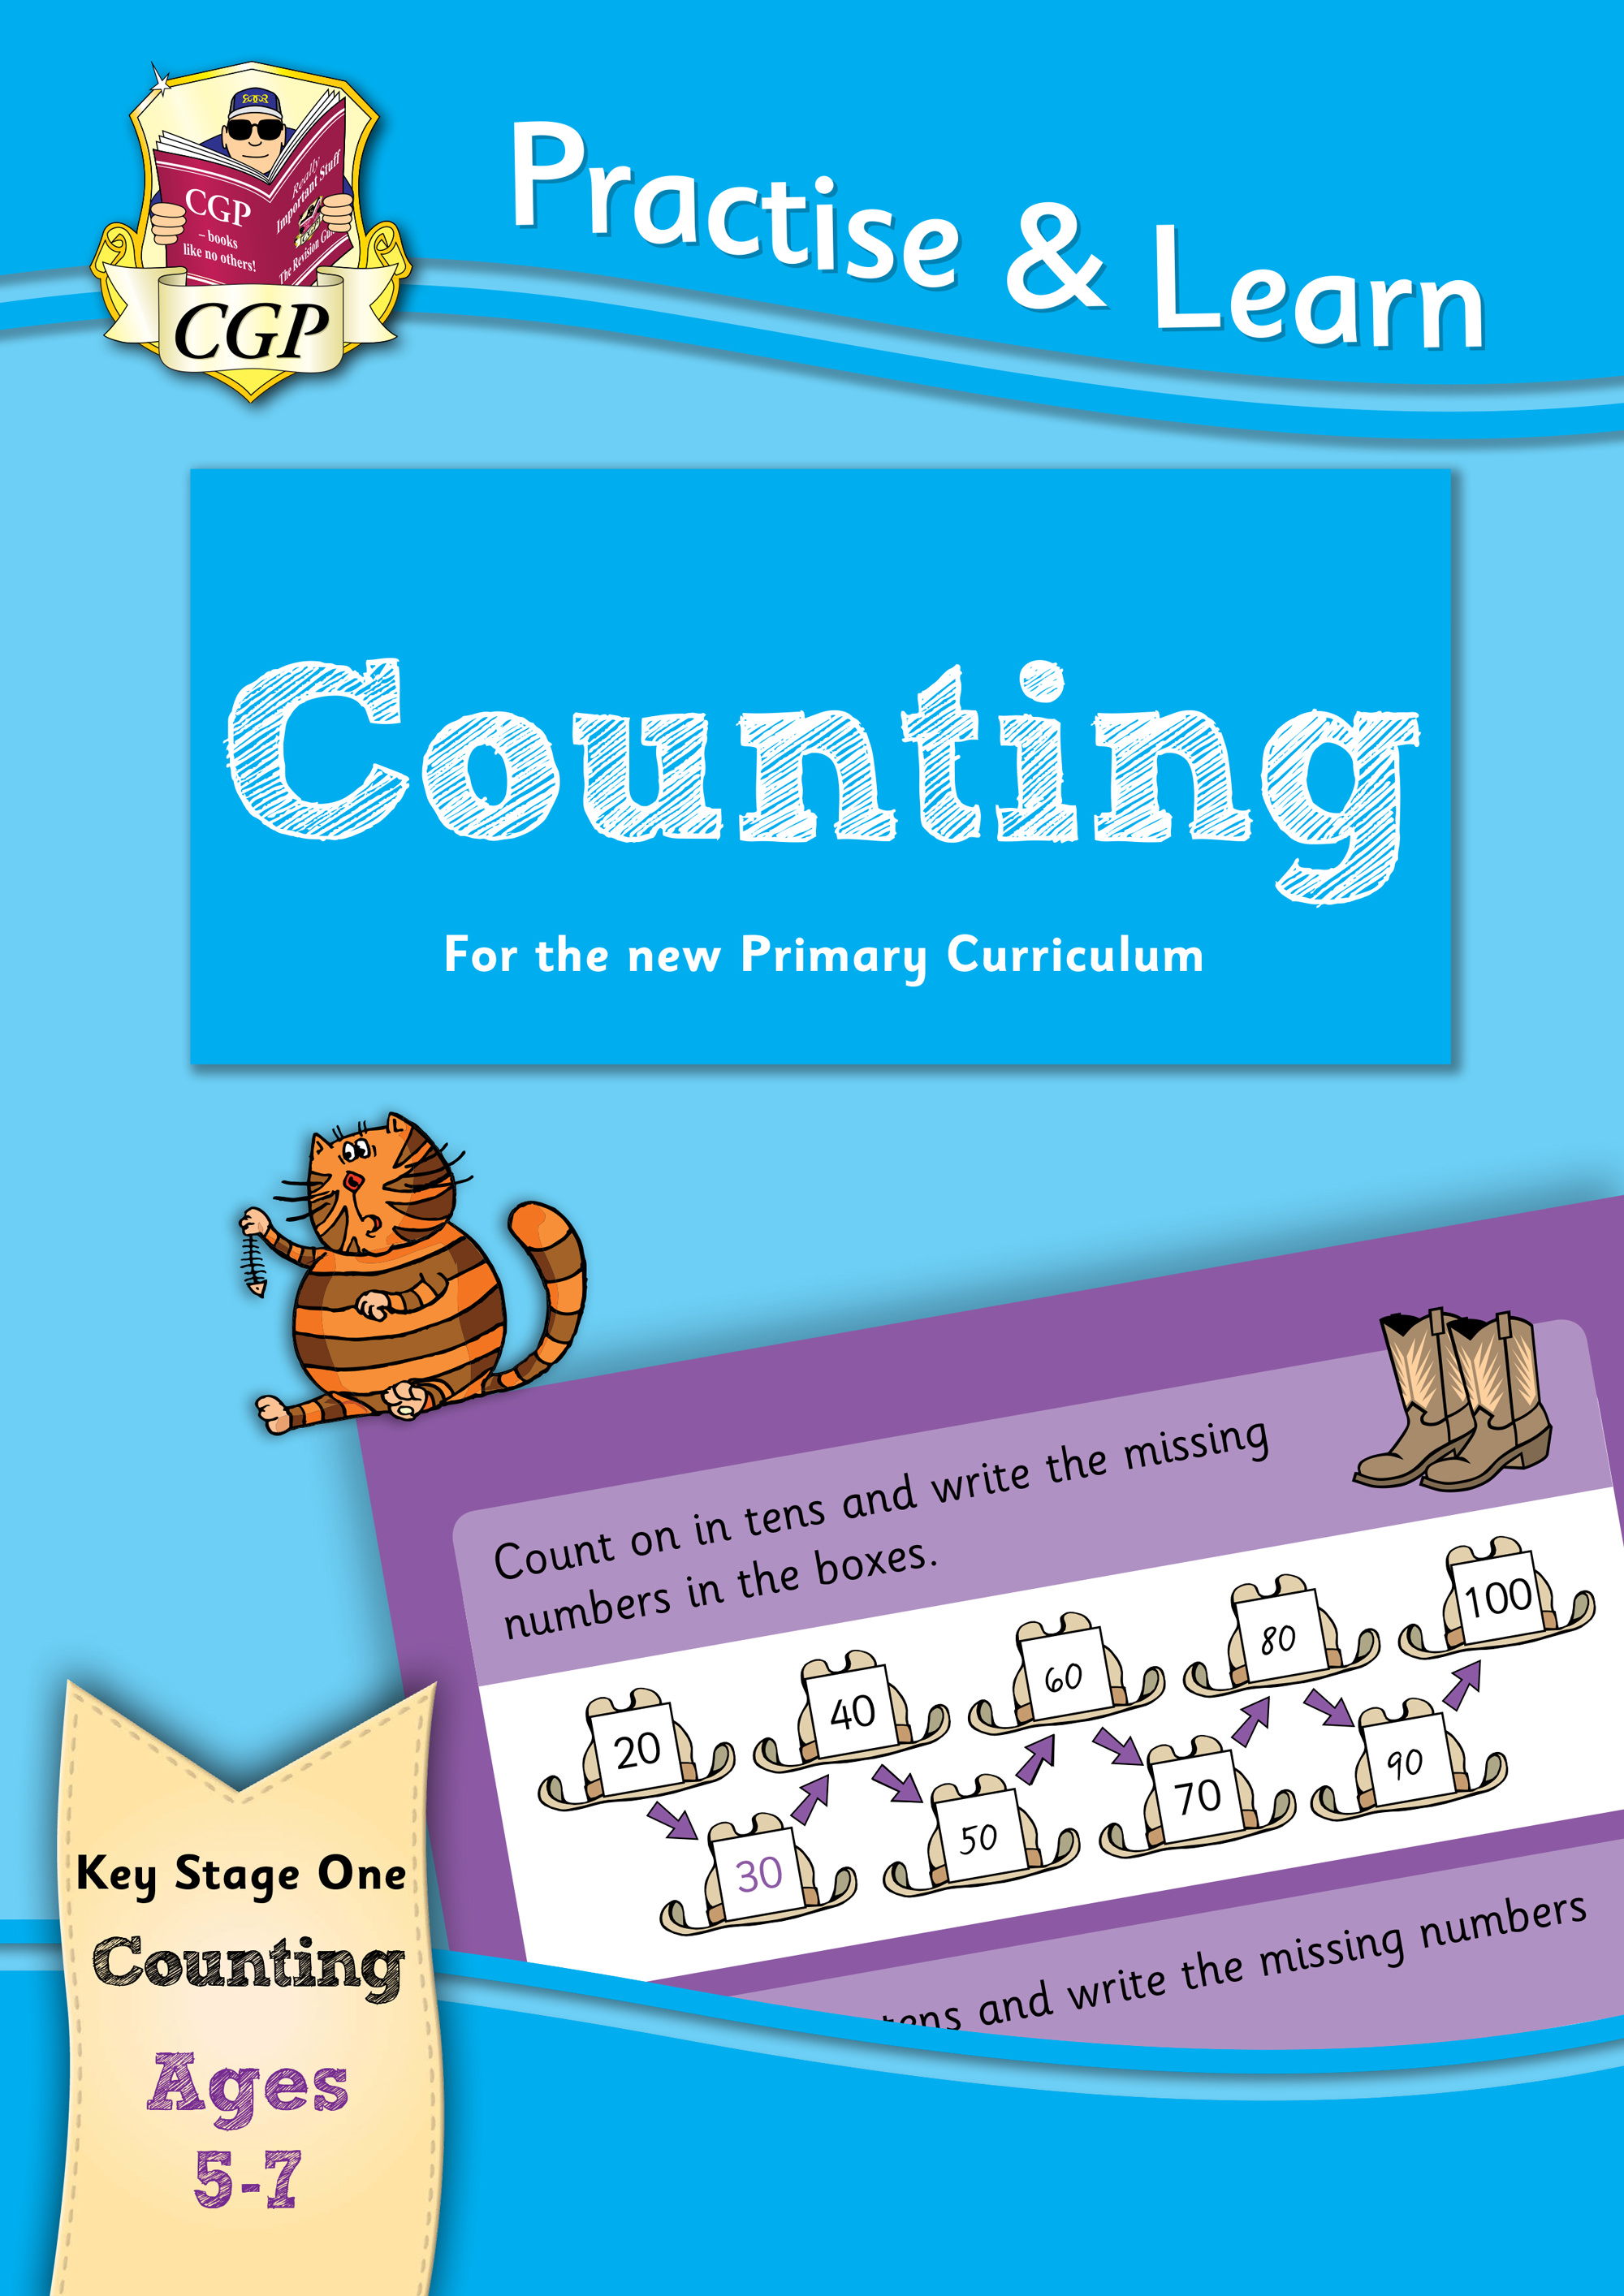 MPCN12DK - New Curriculum Practise & Learn: Counting for Ages 5-7